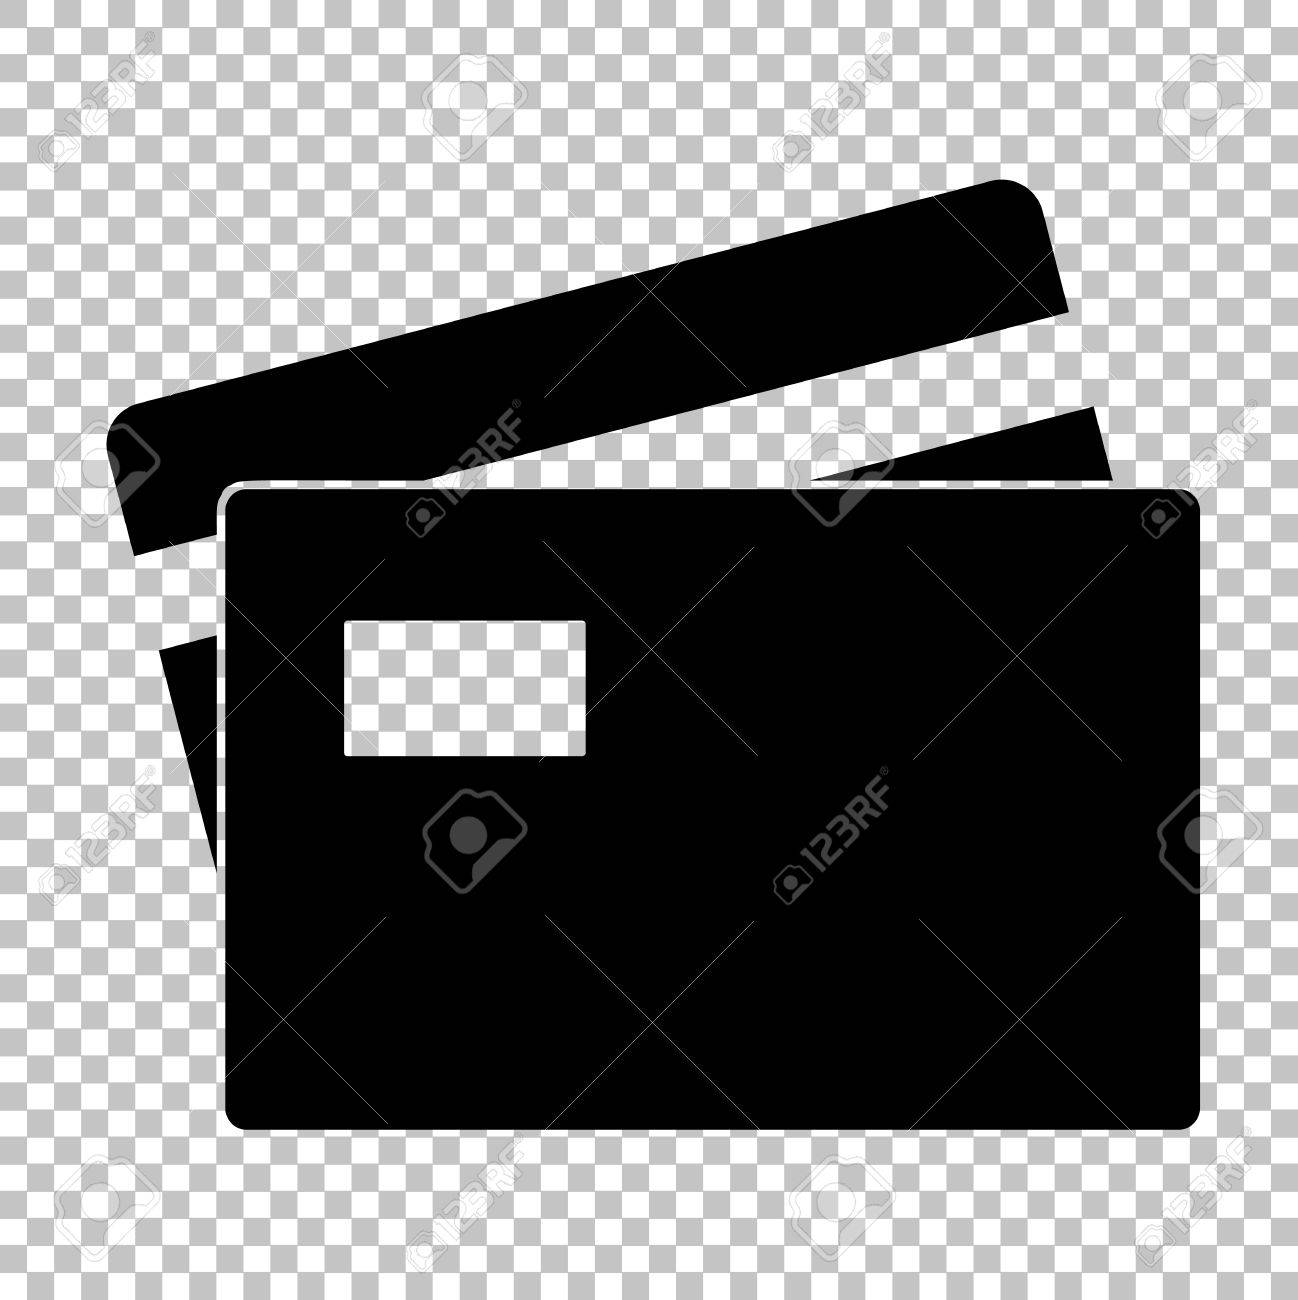 credit card sign flat style icon on transparent background royalty